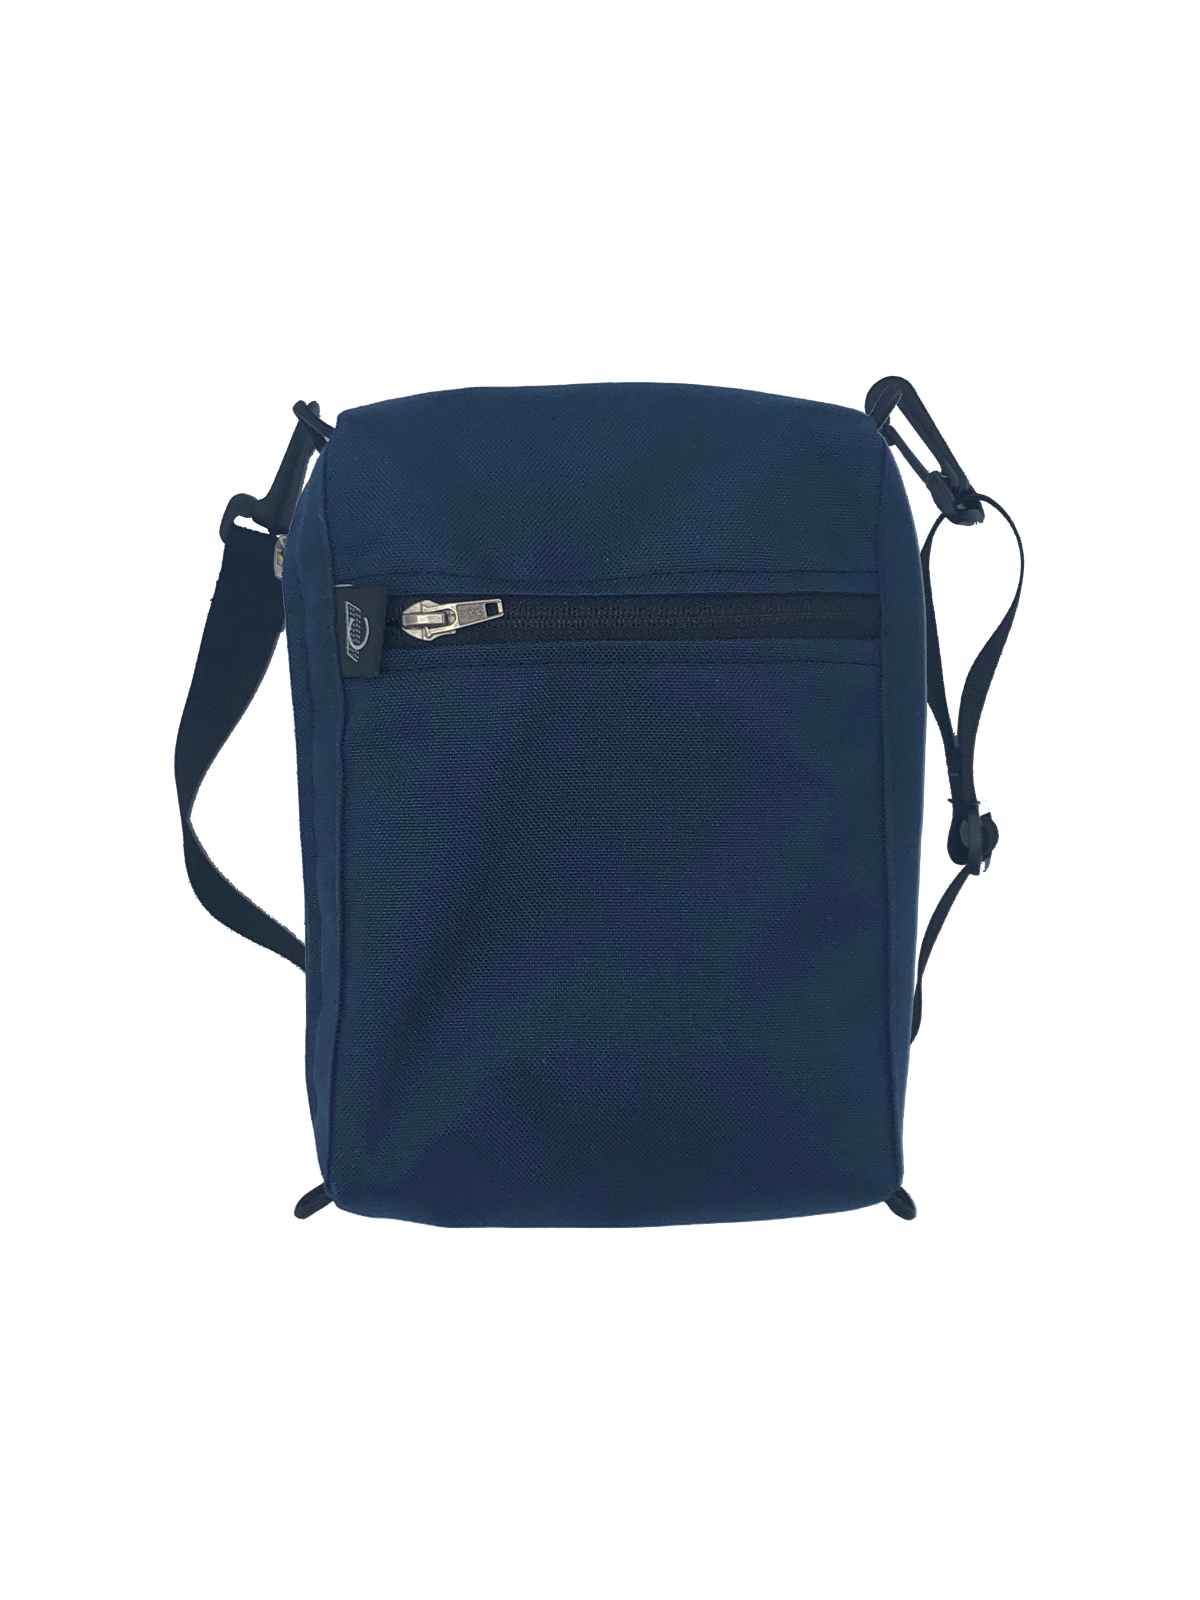 Coma Brand Coma Shoulder Bag Navy